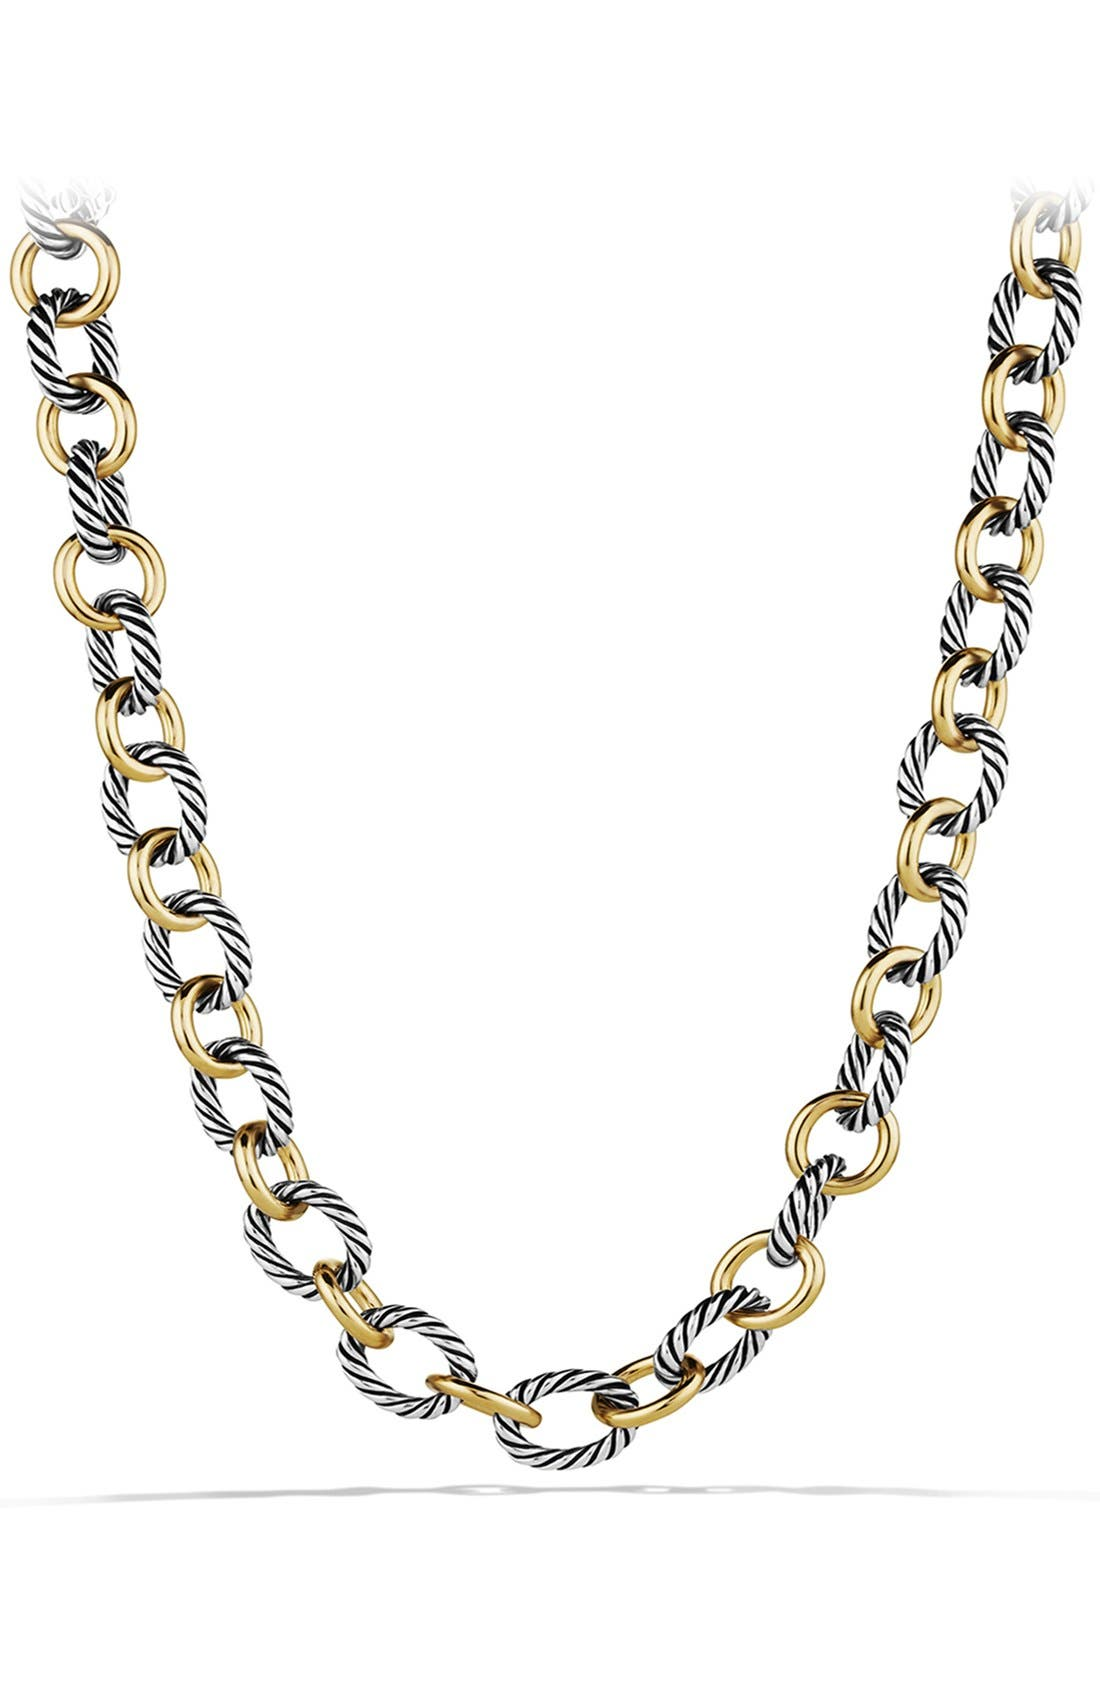 David Yurman 'Oval' Large Link Necklace with Gold